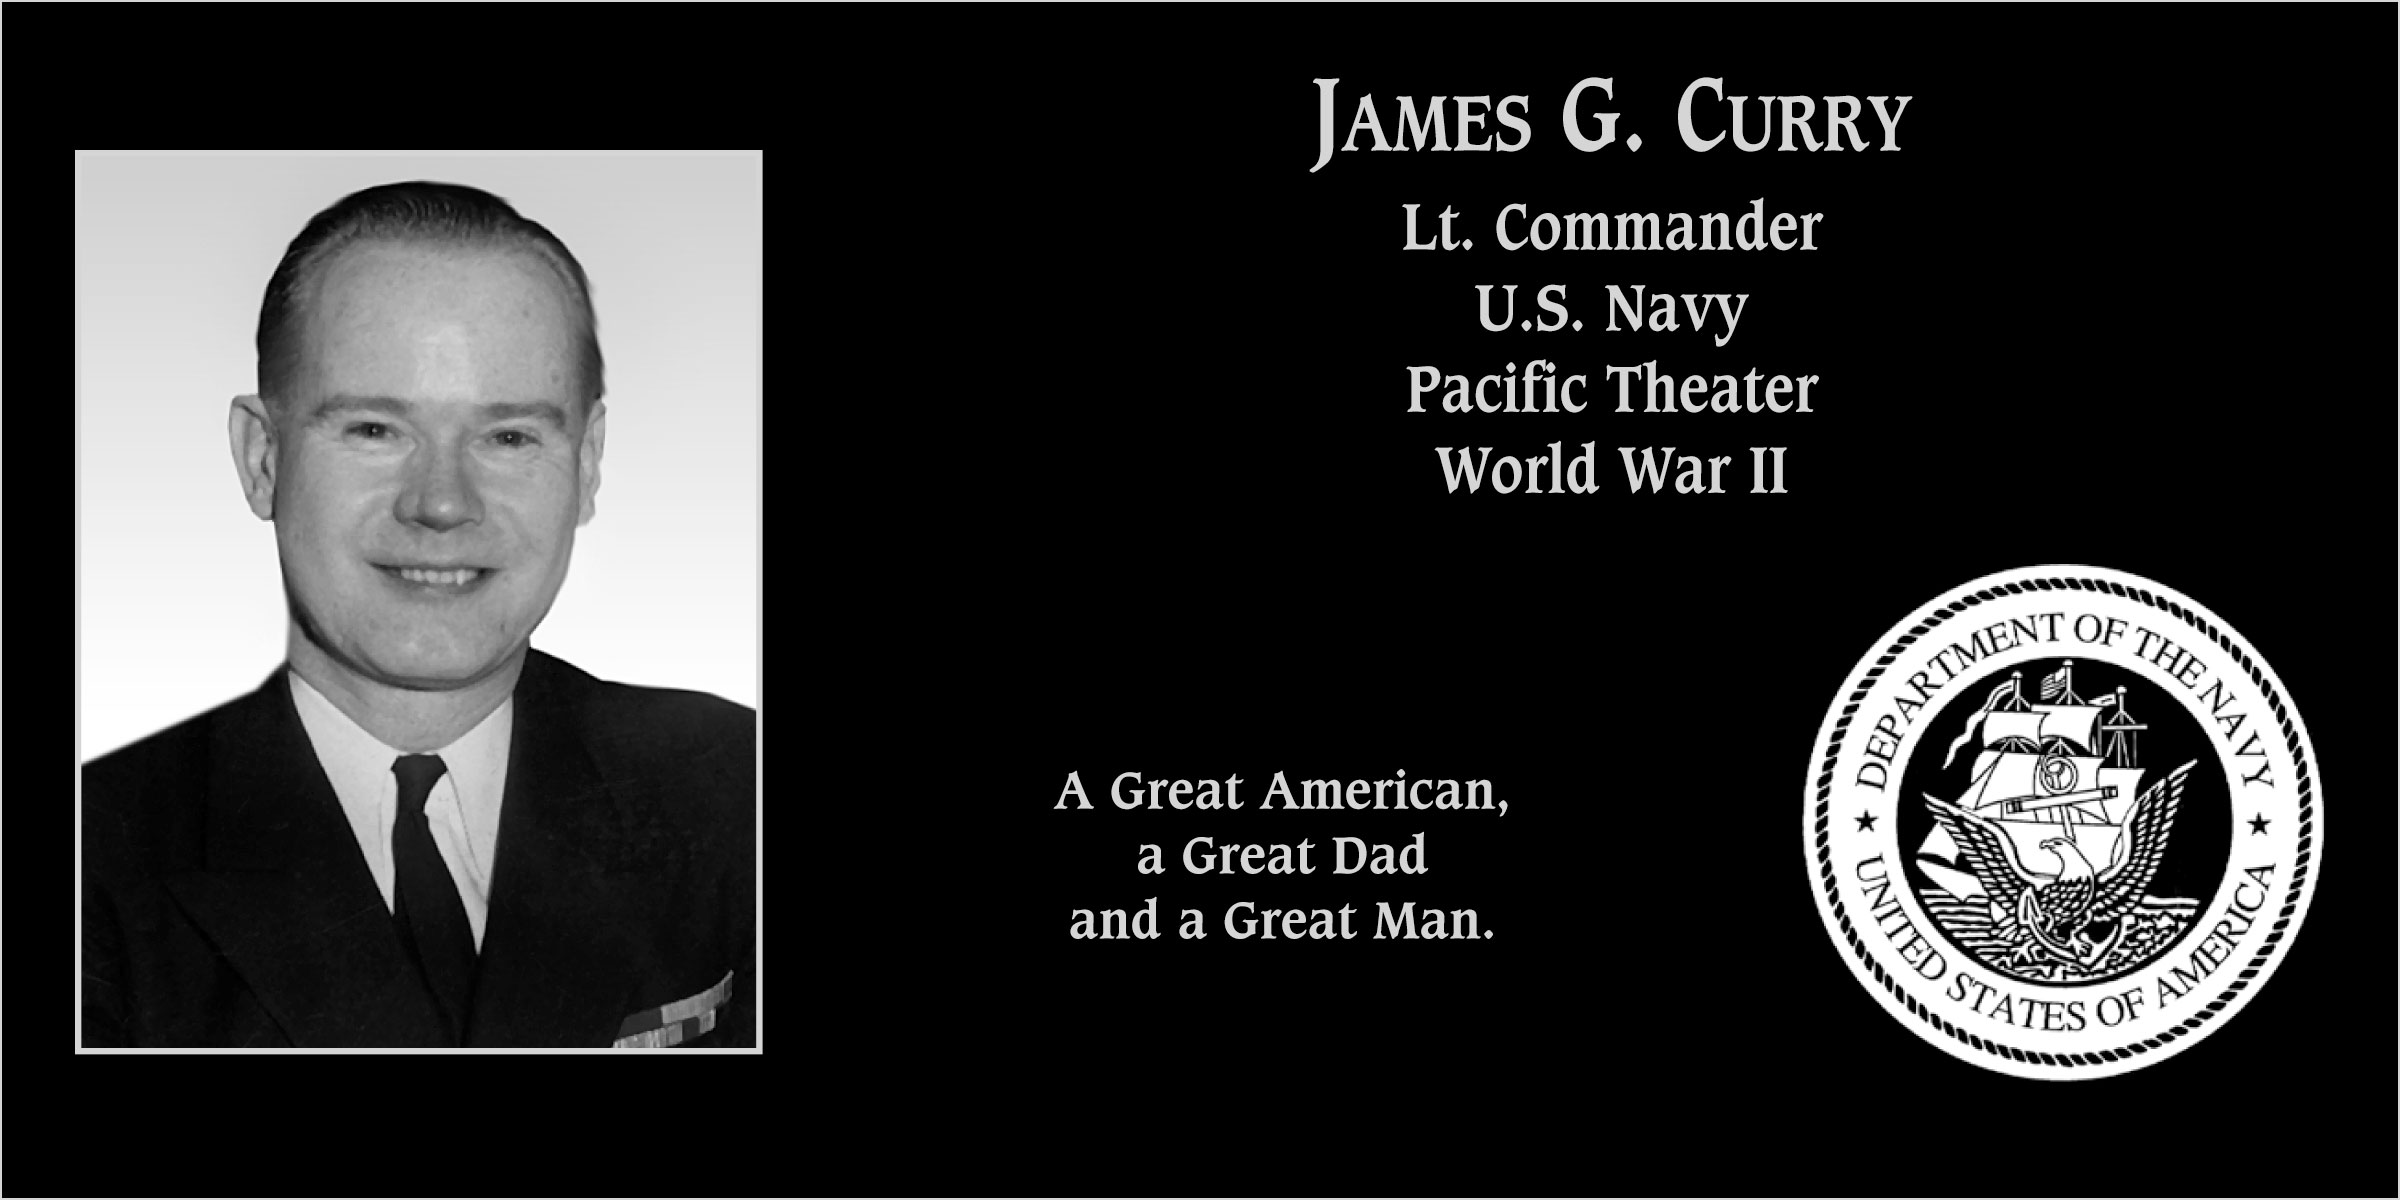 James G. Curry